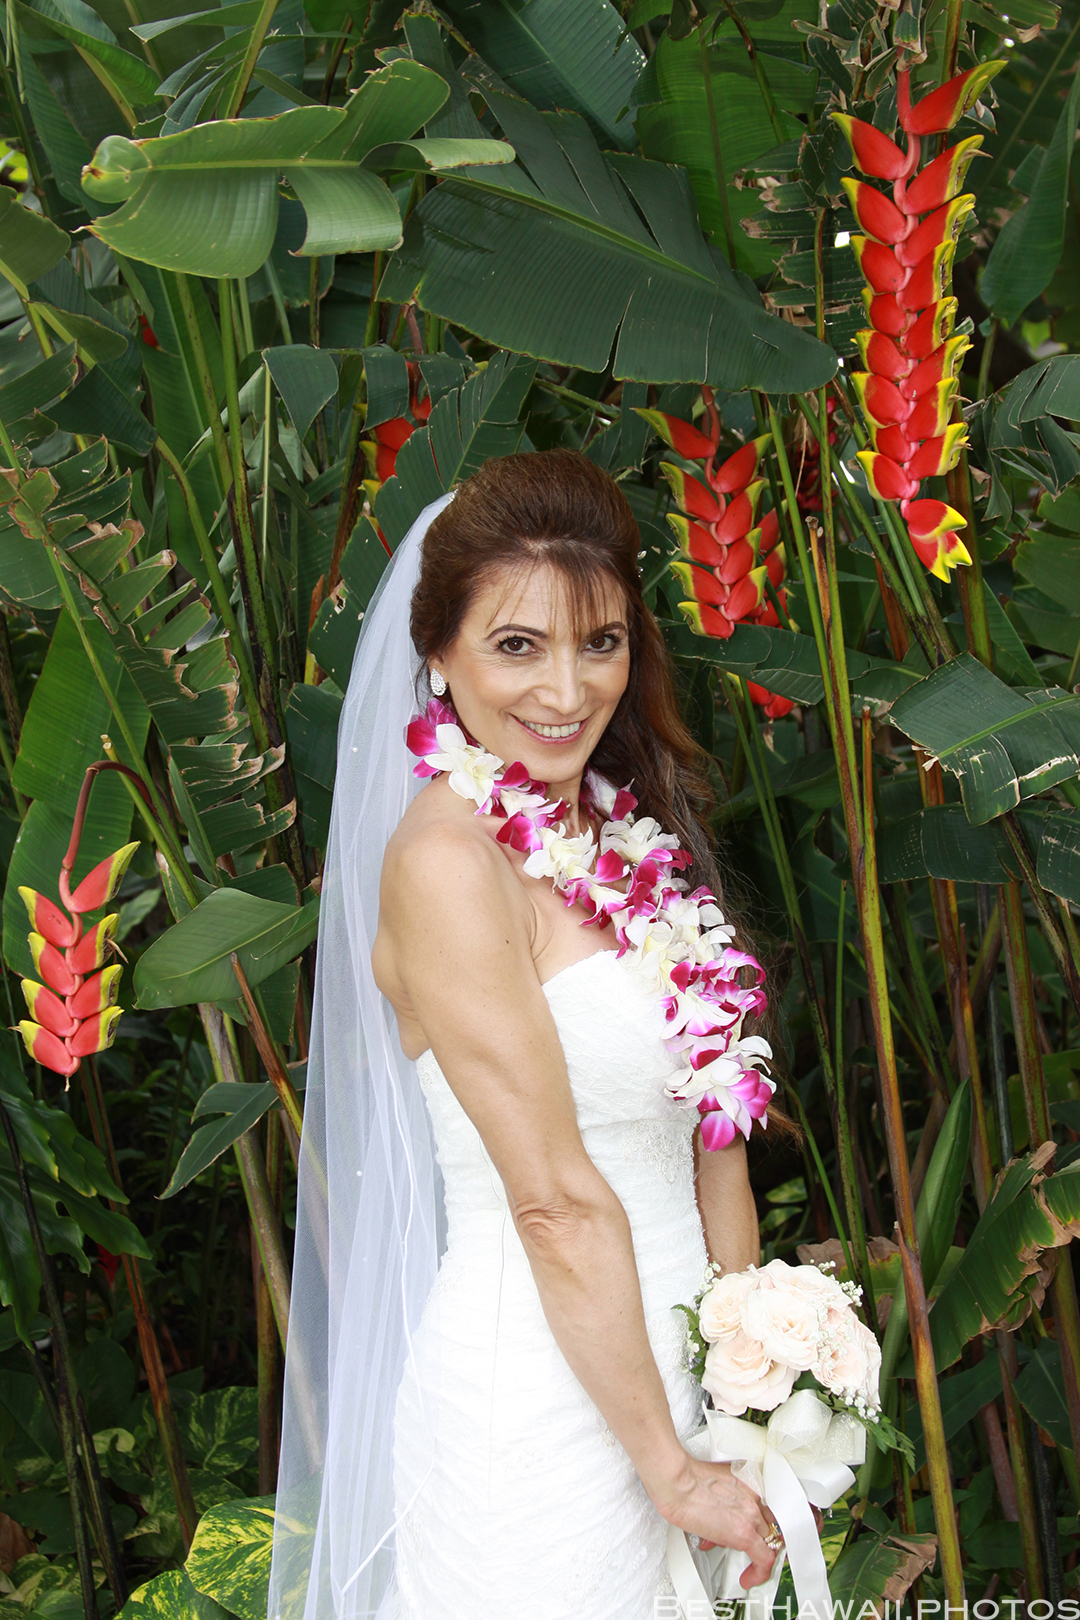 Wedding at Hale Koa Hotel by Pasha www.BestHawaii.photos 121820158520